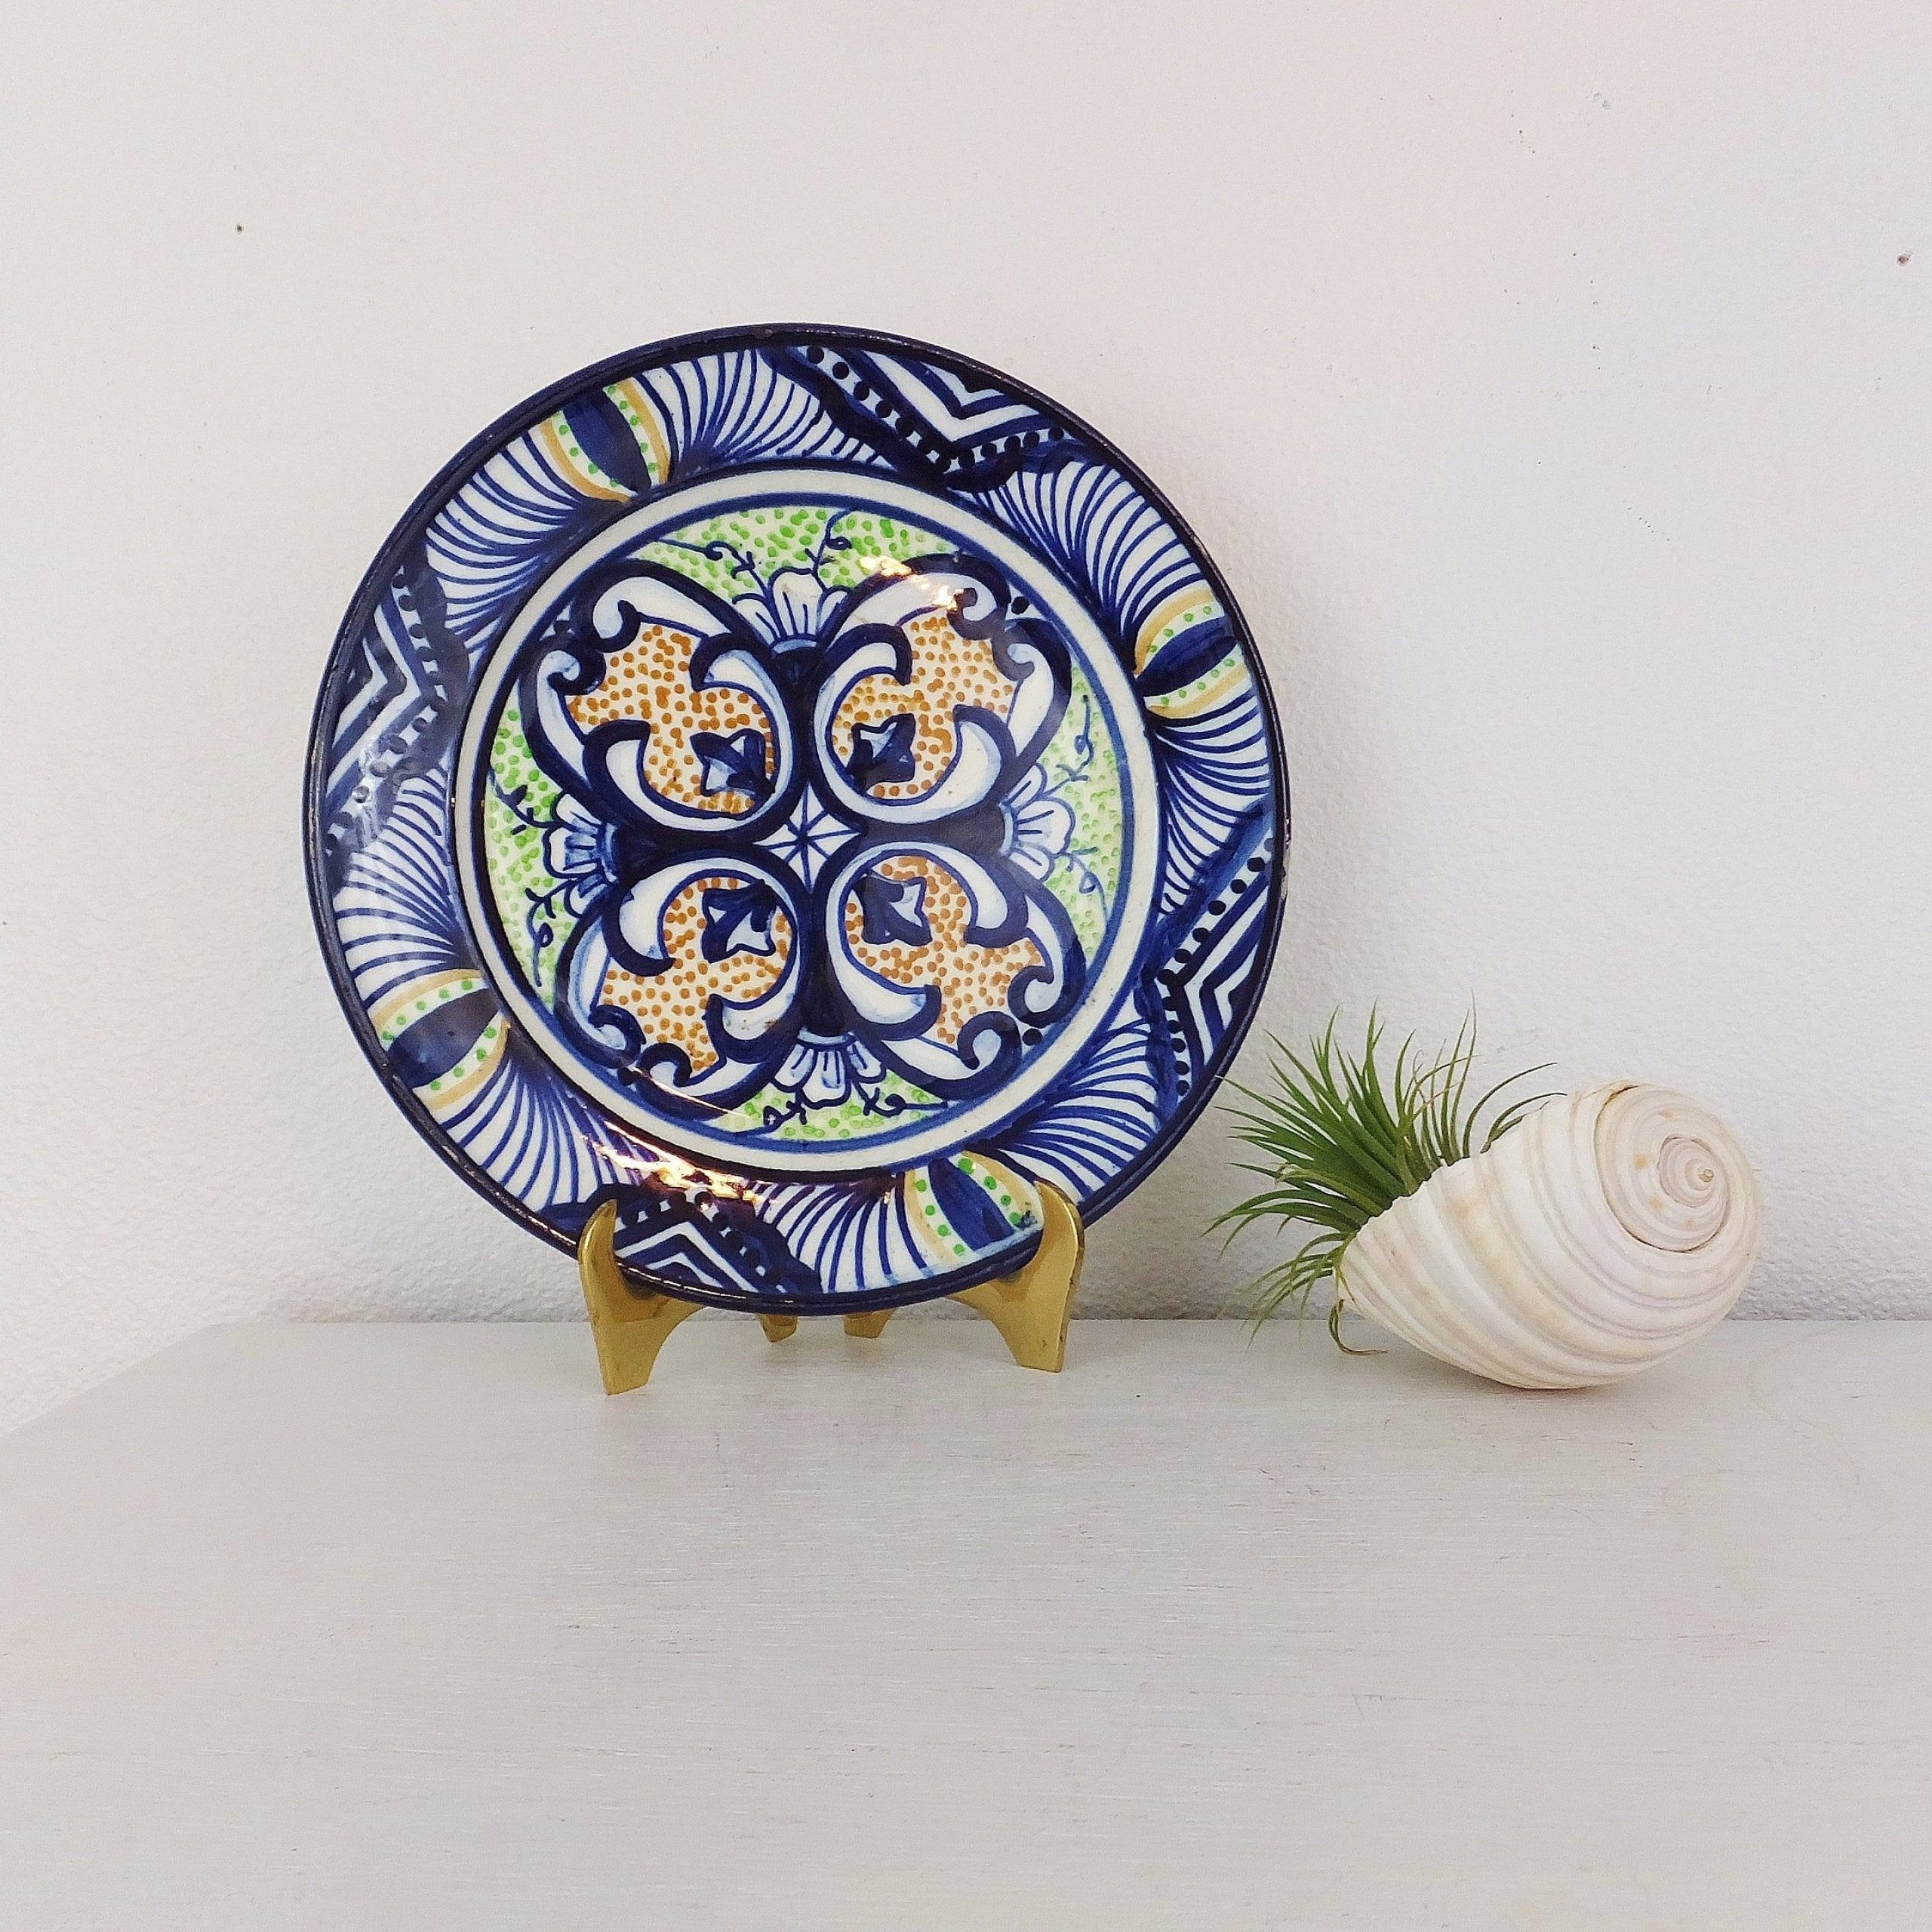 Vintage Spanish Plate P Zorrilla Wall Hanging Display Plate Throughout Latest Blended Fabric Salty But Sweet Wall Hangings (View 5 of 20)